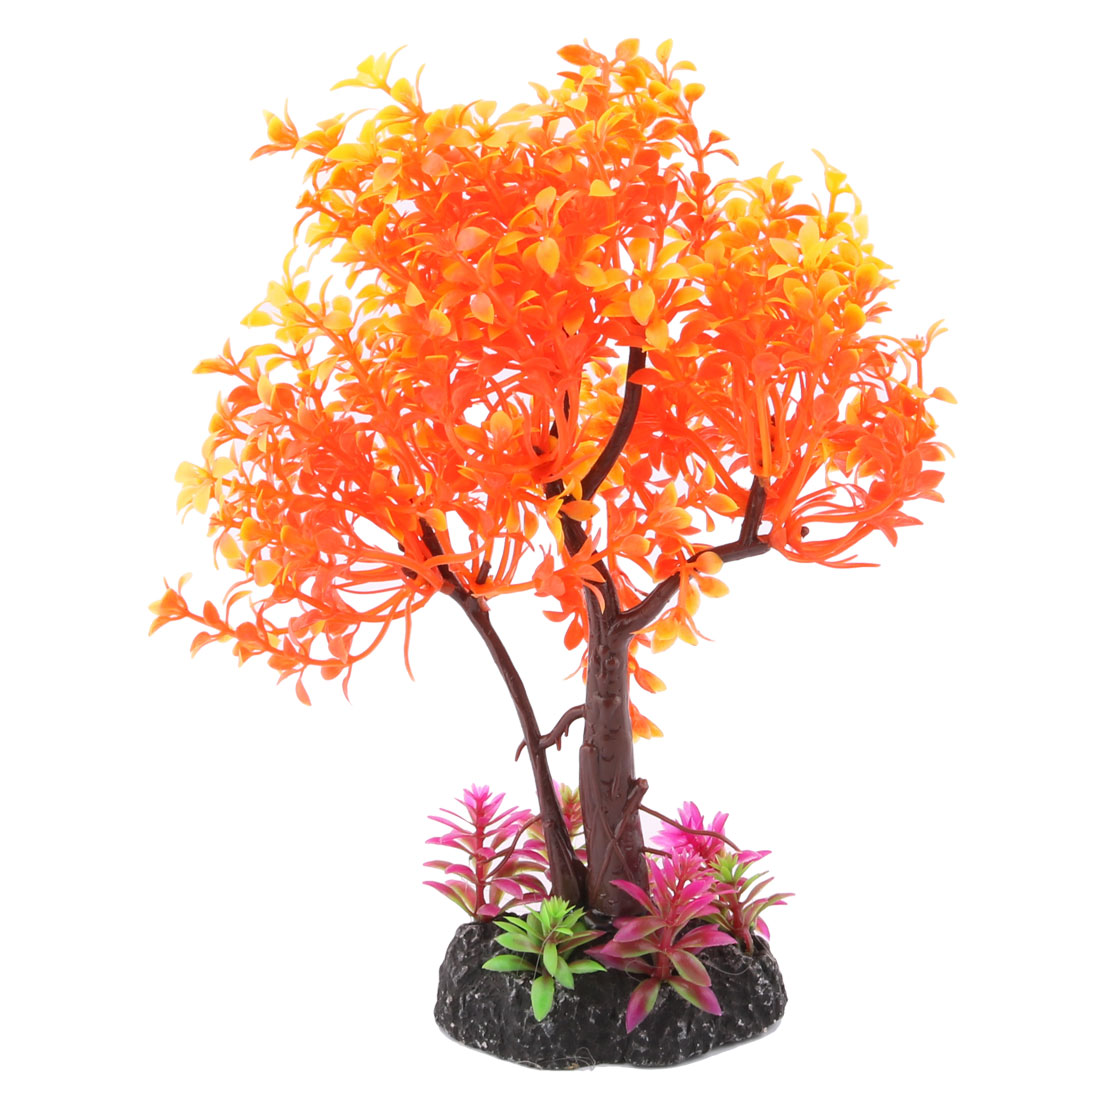 Plastic Artificial Emulational Lush Tree Shape Fish Tank Aquarium Plant Orange